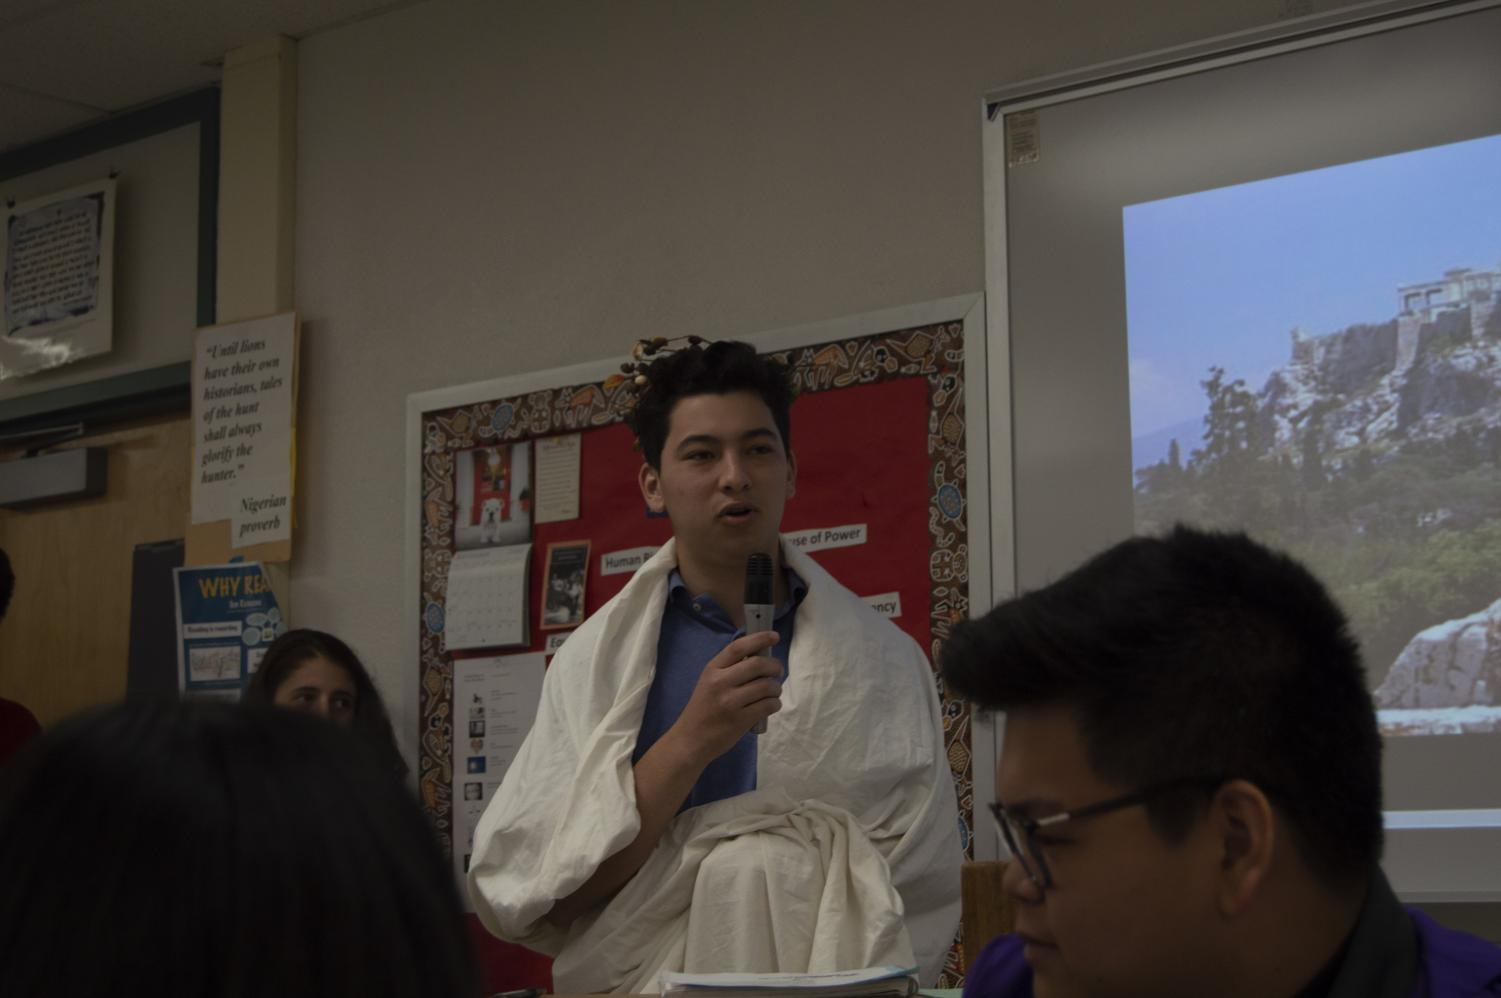 Student Iain Mendez role plays as an ancient Greek civilian during a discussion.